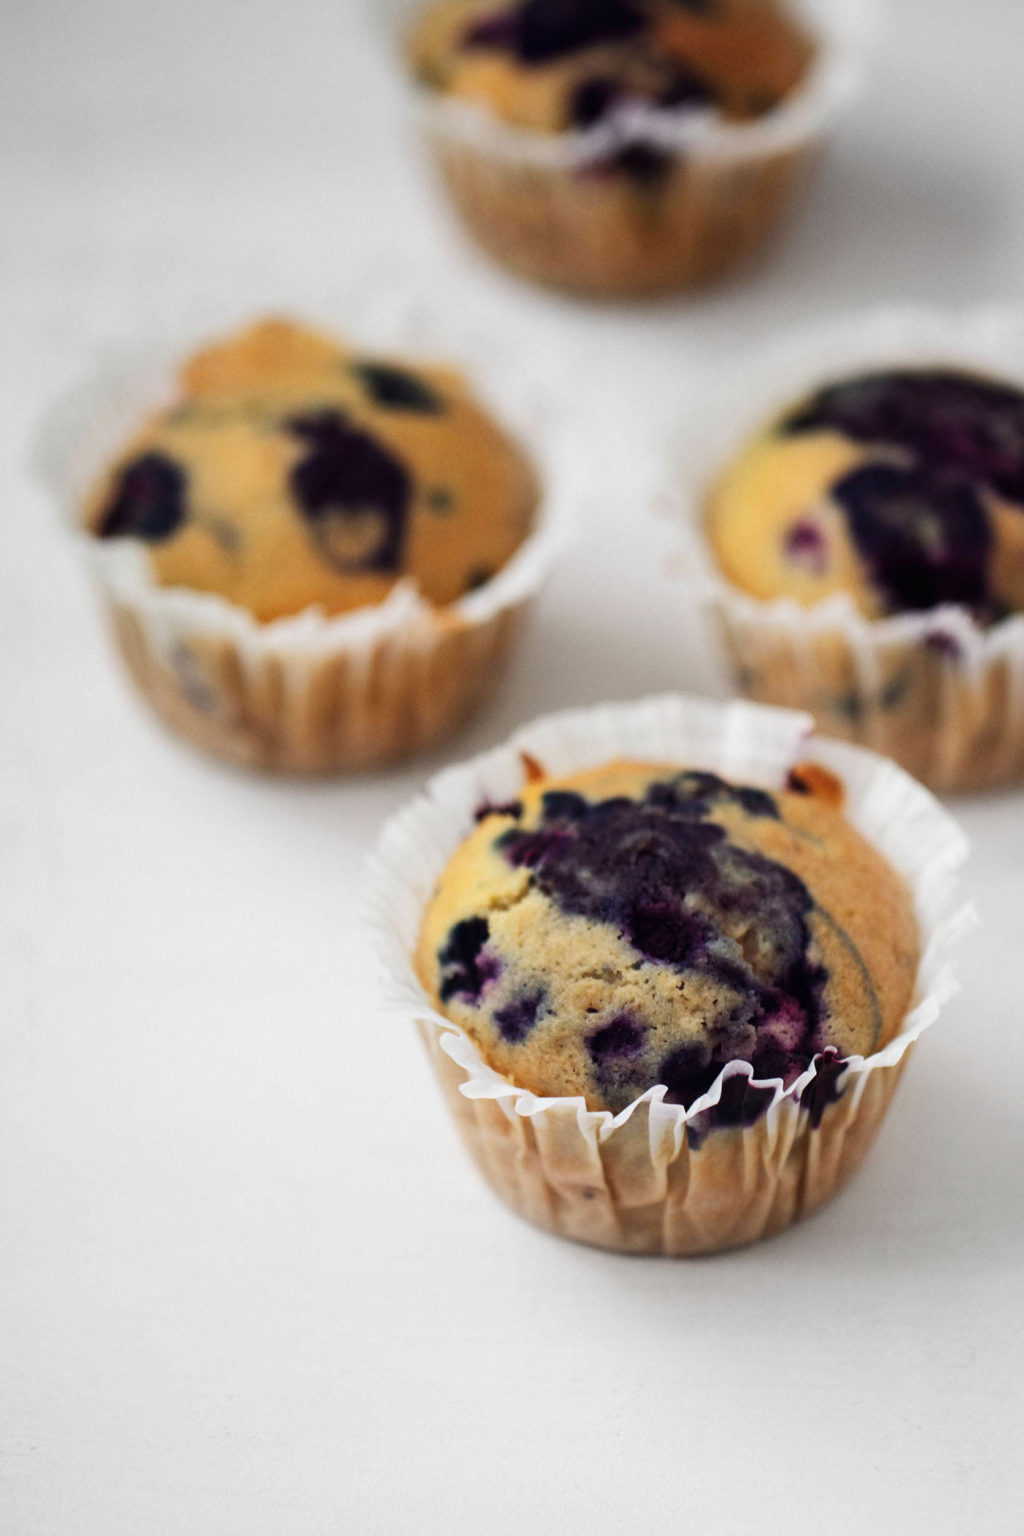 An angled photograph of vegan blueberry corn muffins, which are arranged on a white surface.